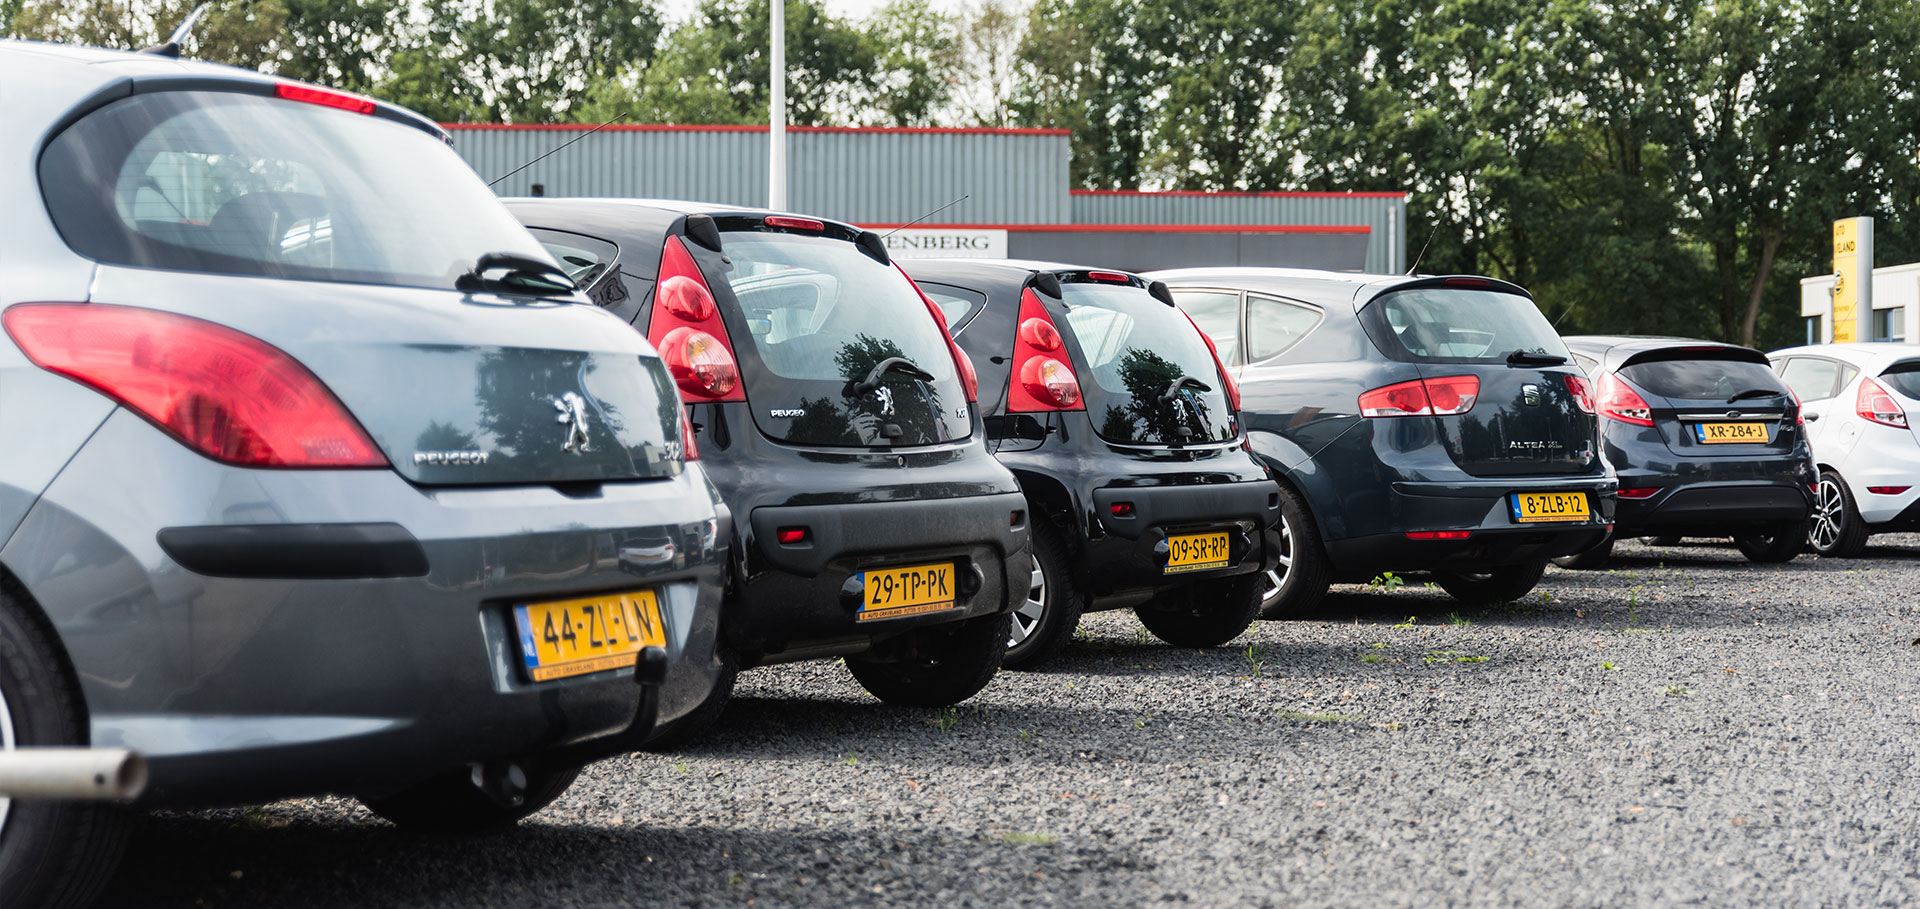 Lease en financieren bij Auto Graveland in Putten